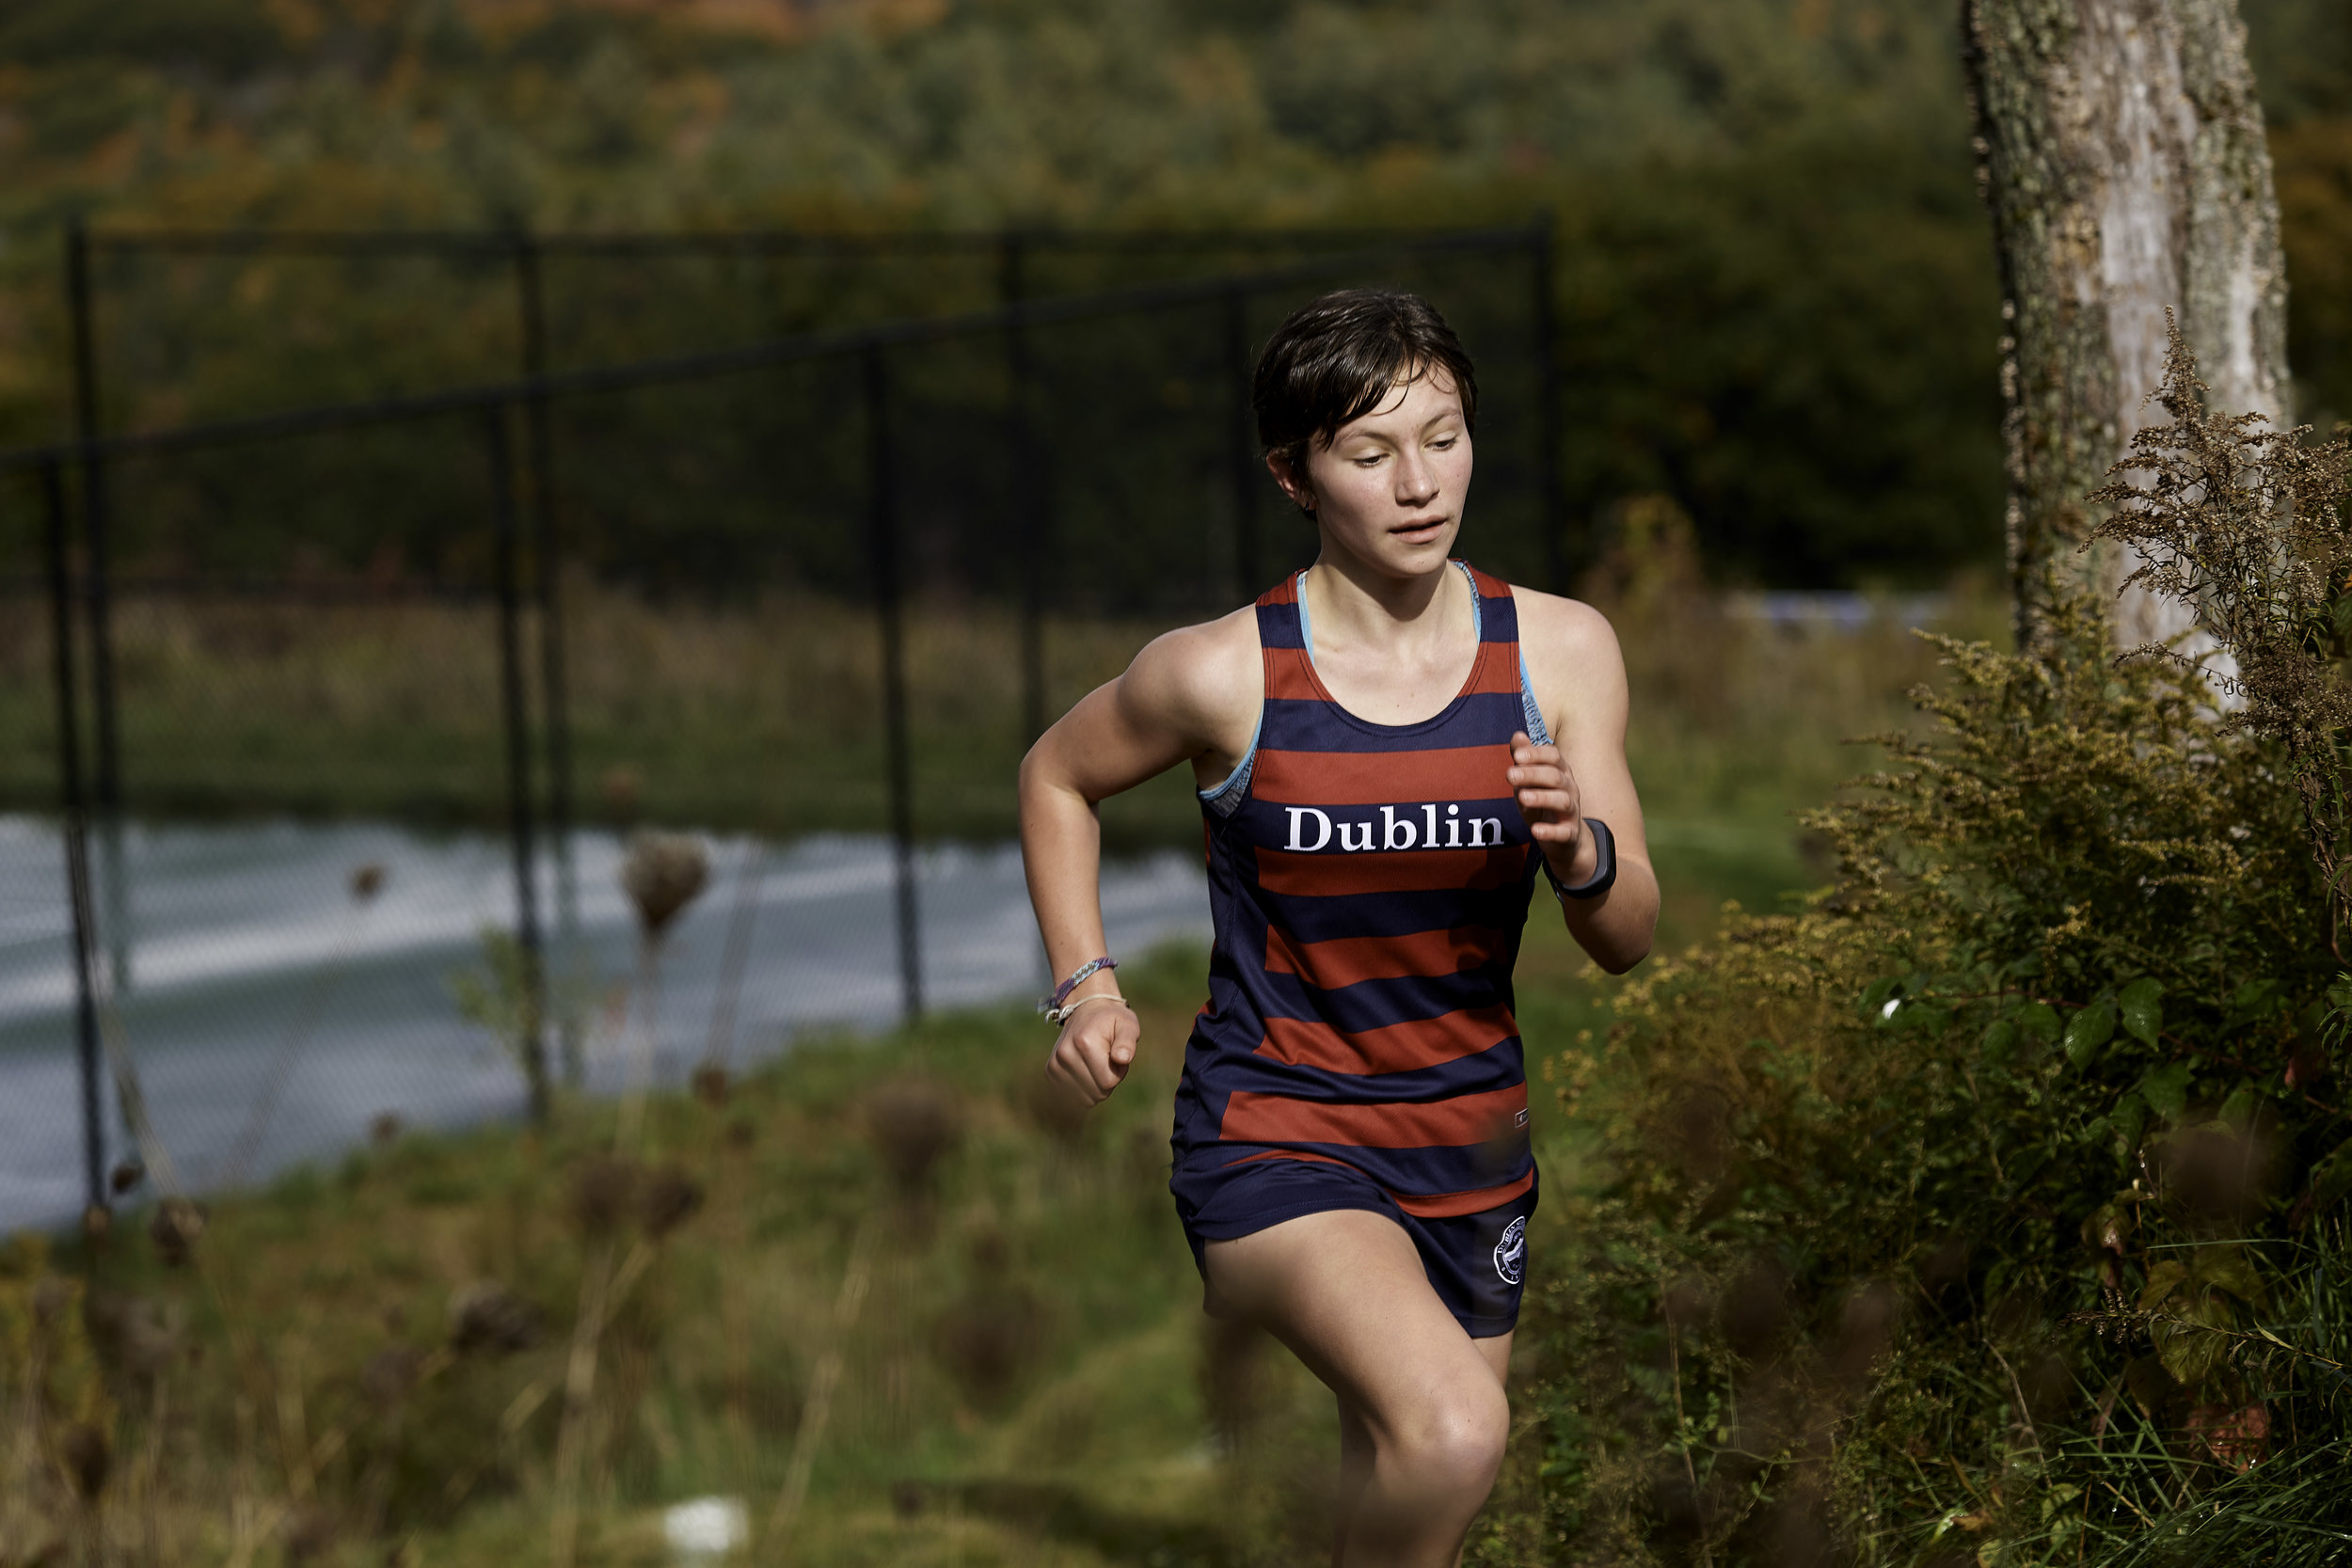 Dublion Invitational - October 12, 2018 - 136612.jpg